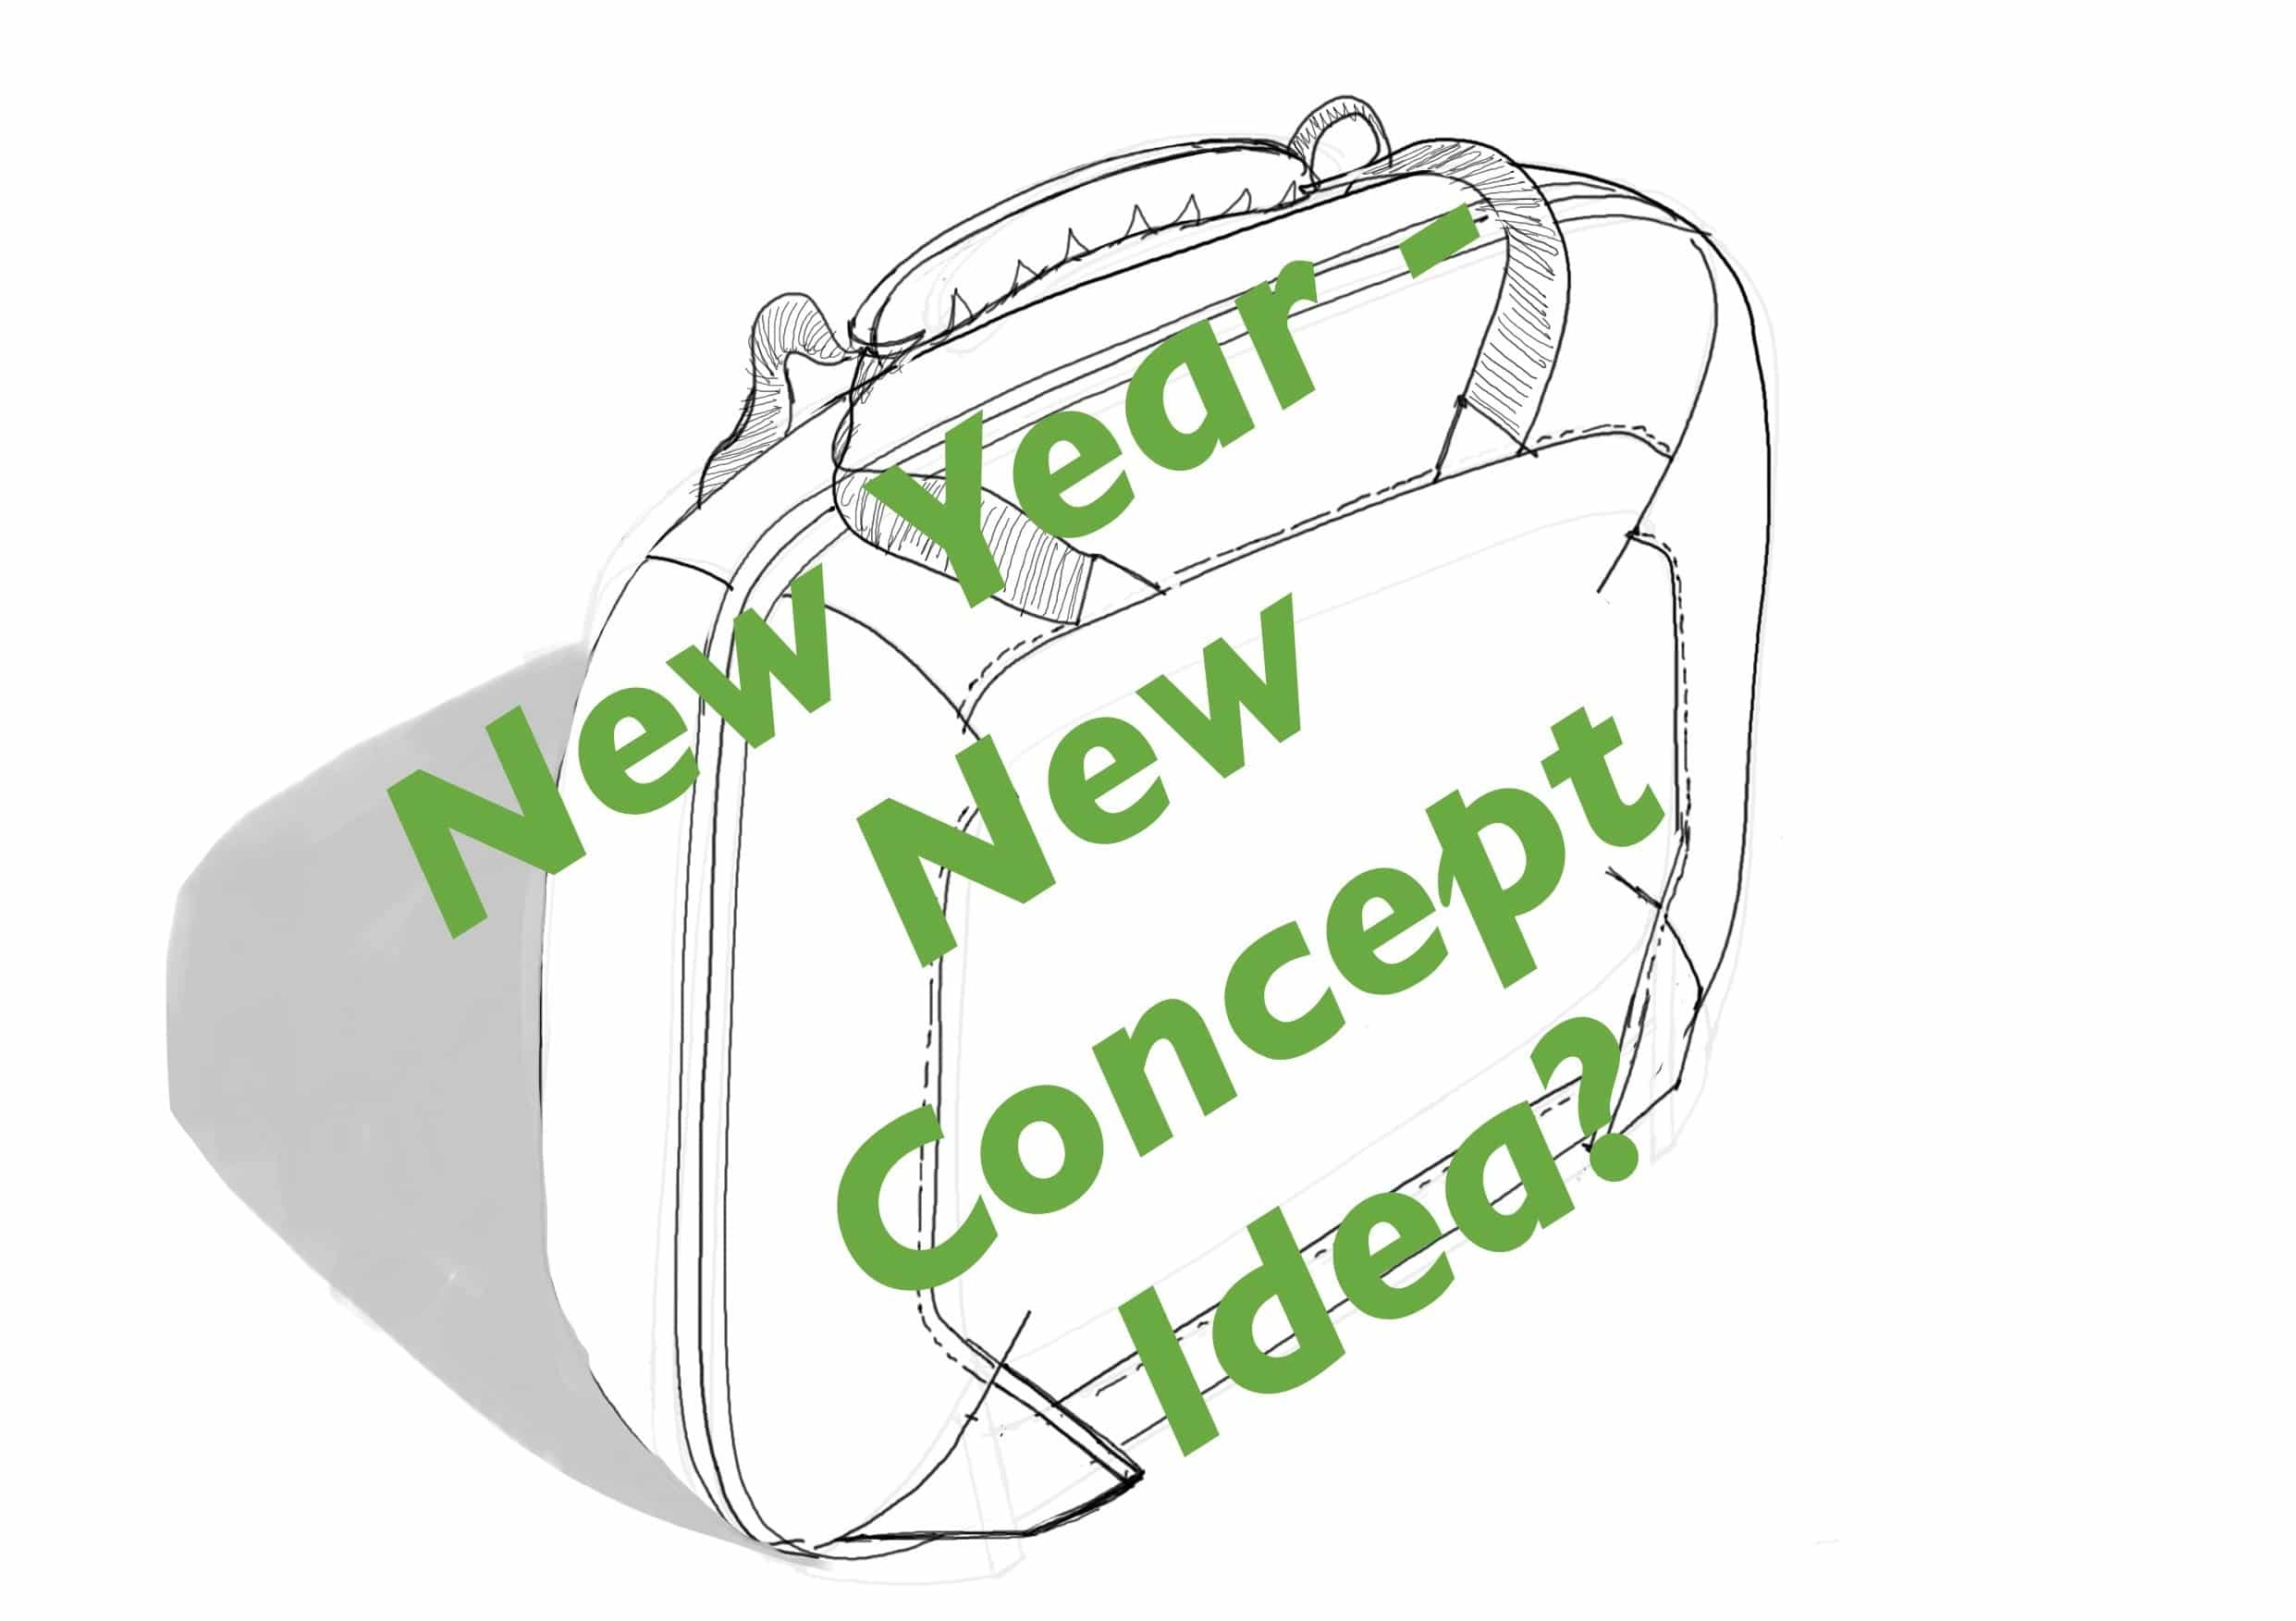 New Year New Bag Concept Design Idea ( and don't say the B word!)